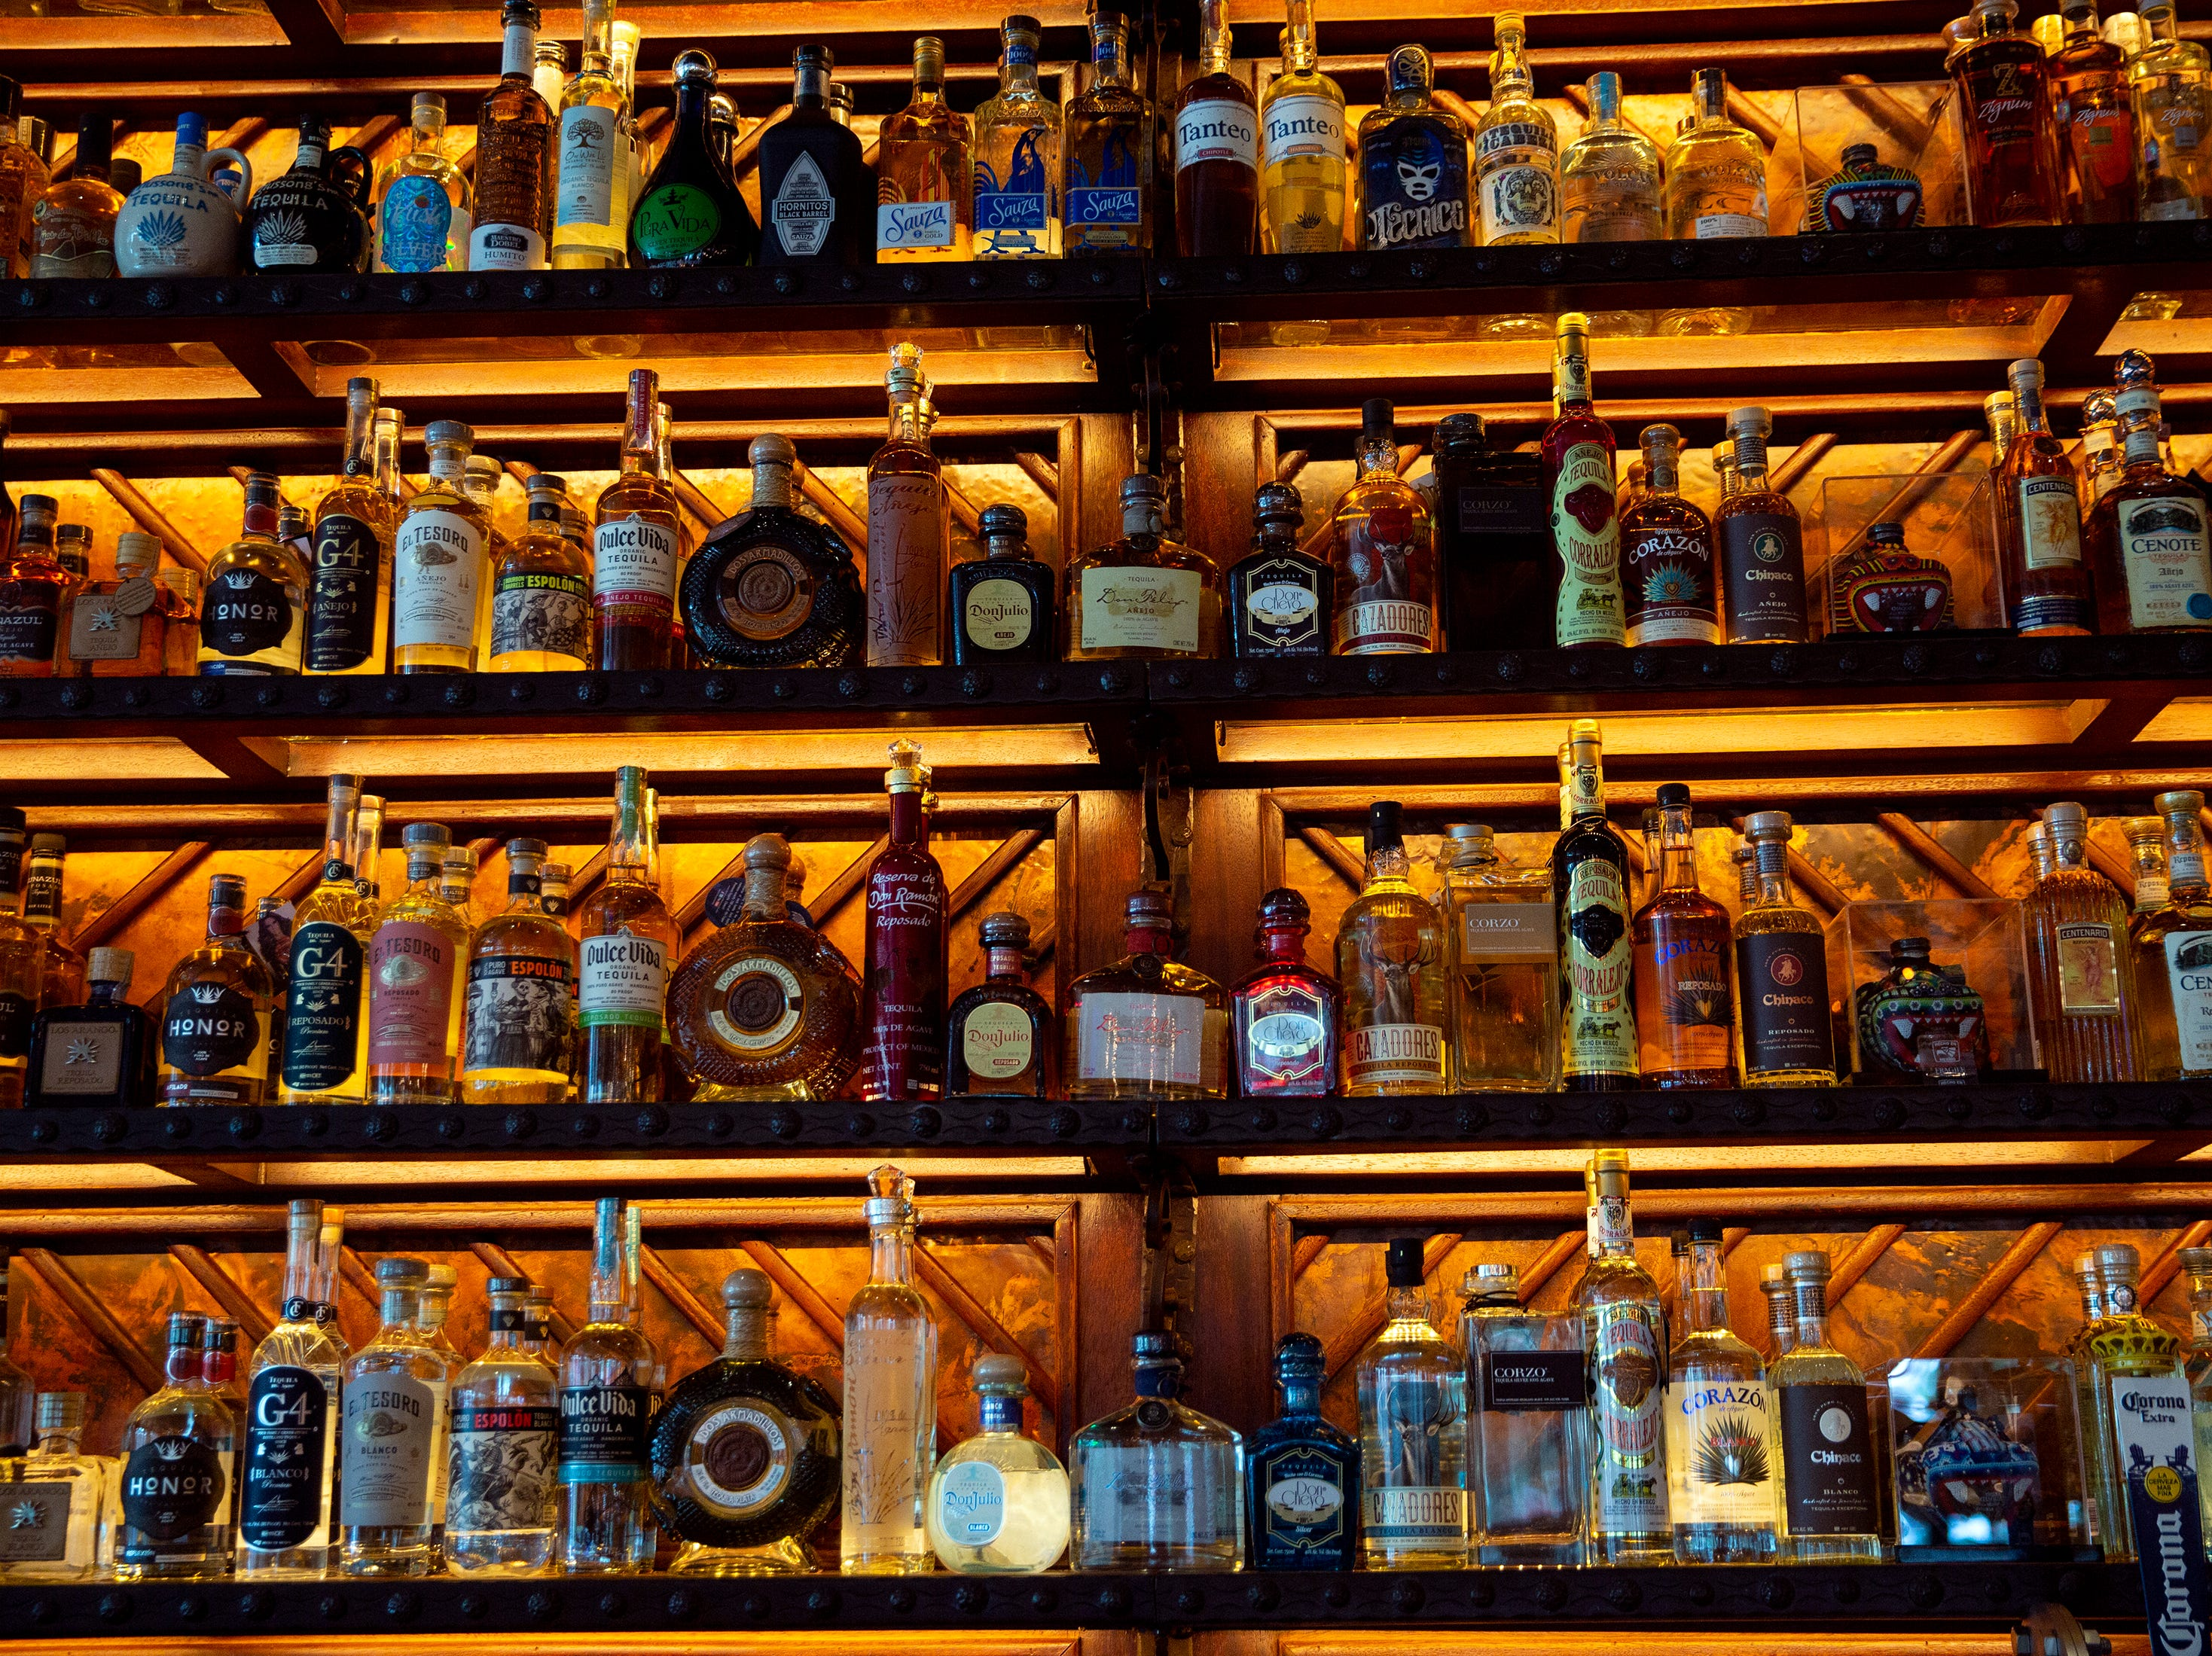 Tequila is displayed at Rocco's Tacos & Tequila Bar, Tuesday, Feb. 26, 2019, in Naples.